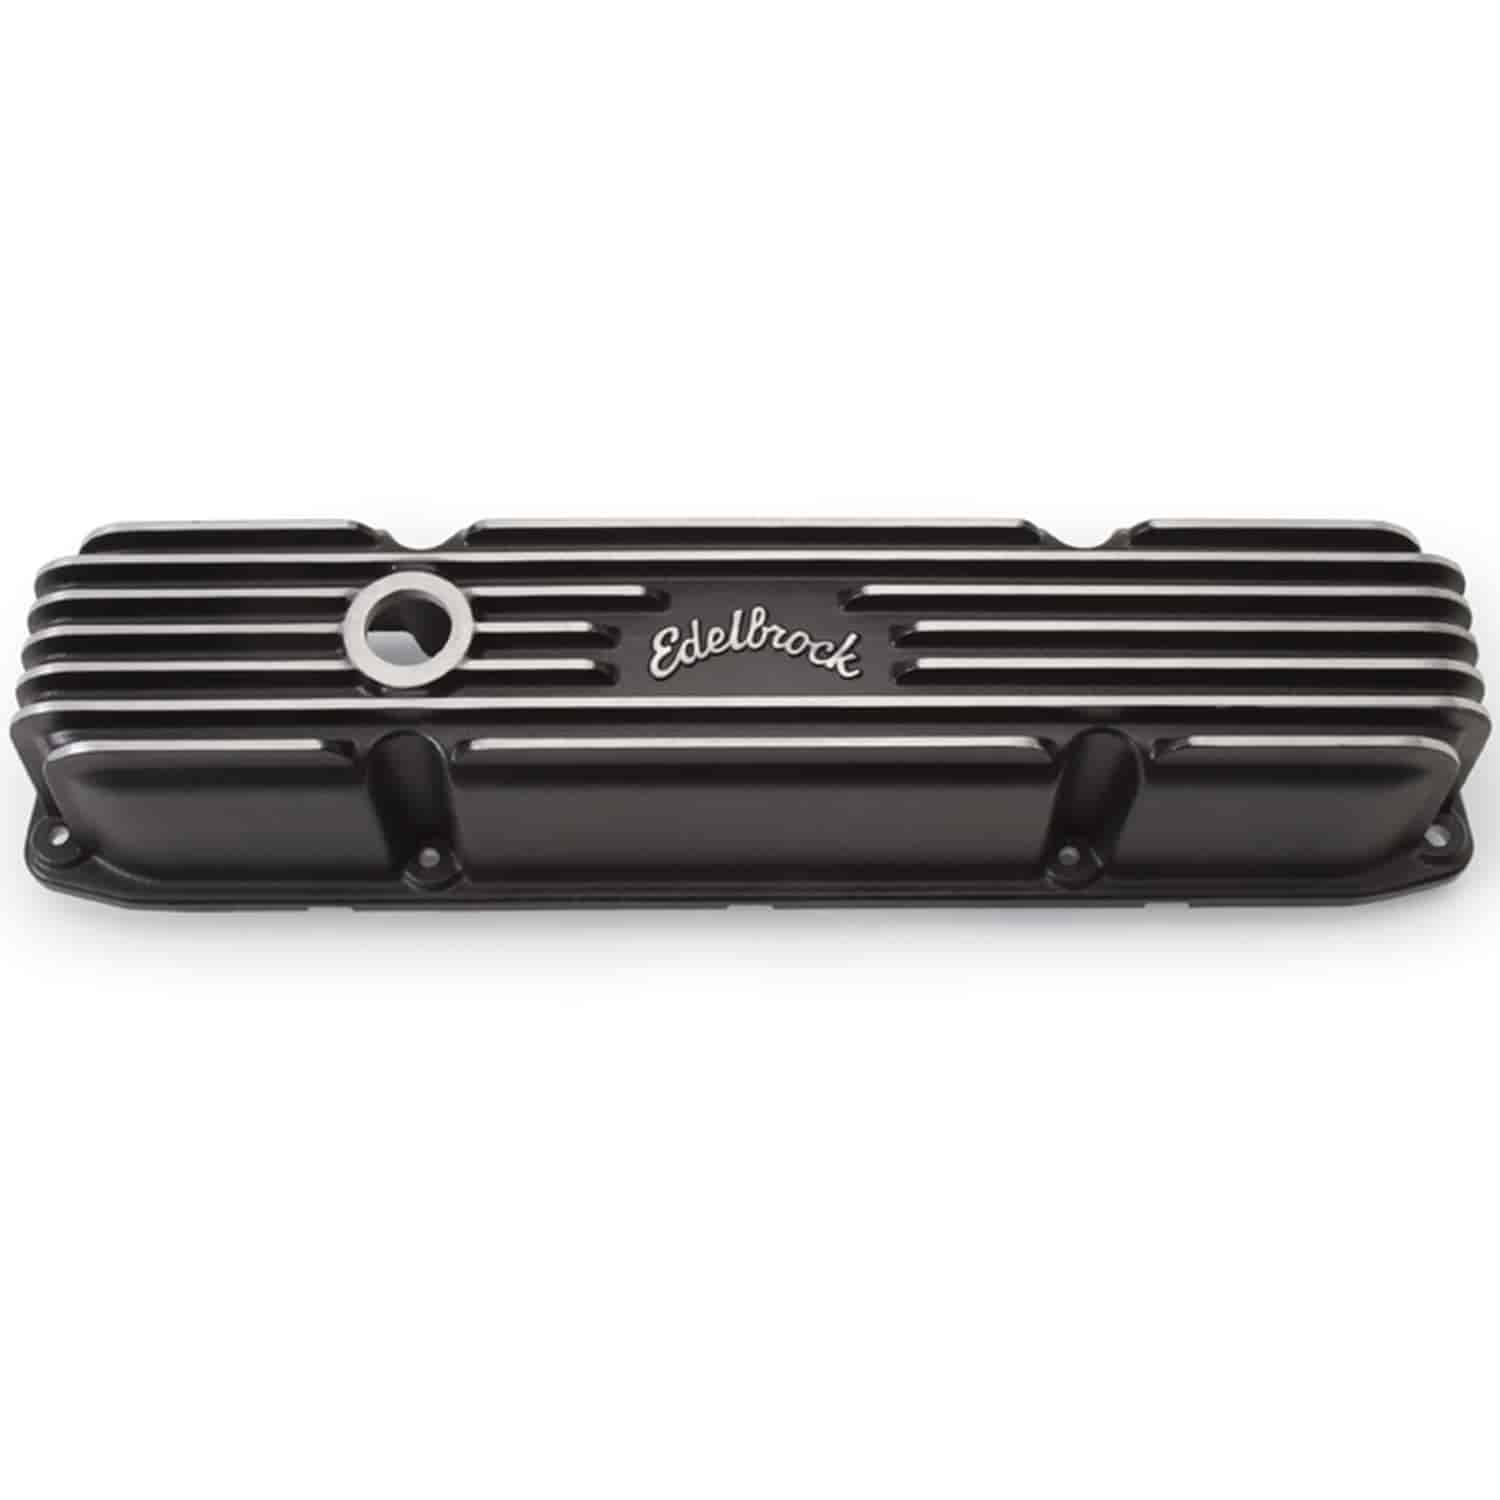 Edelbrock 41923 - Edelbrock Classic Series Valve Covers & Air Cleaners